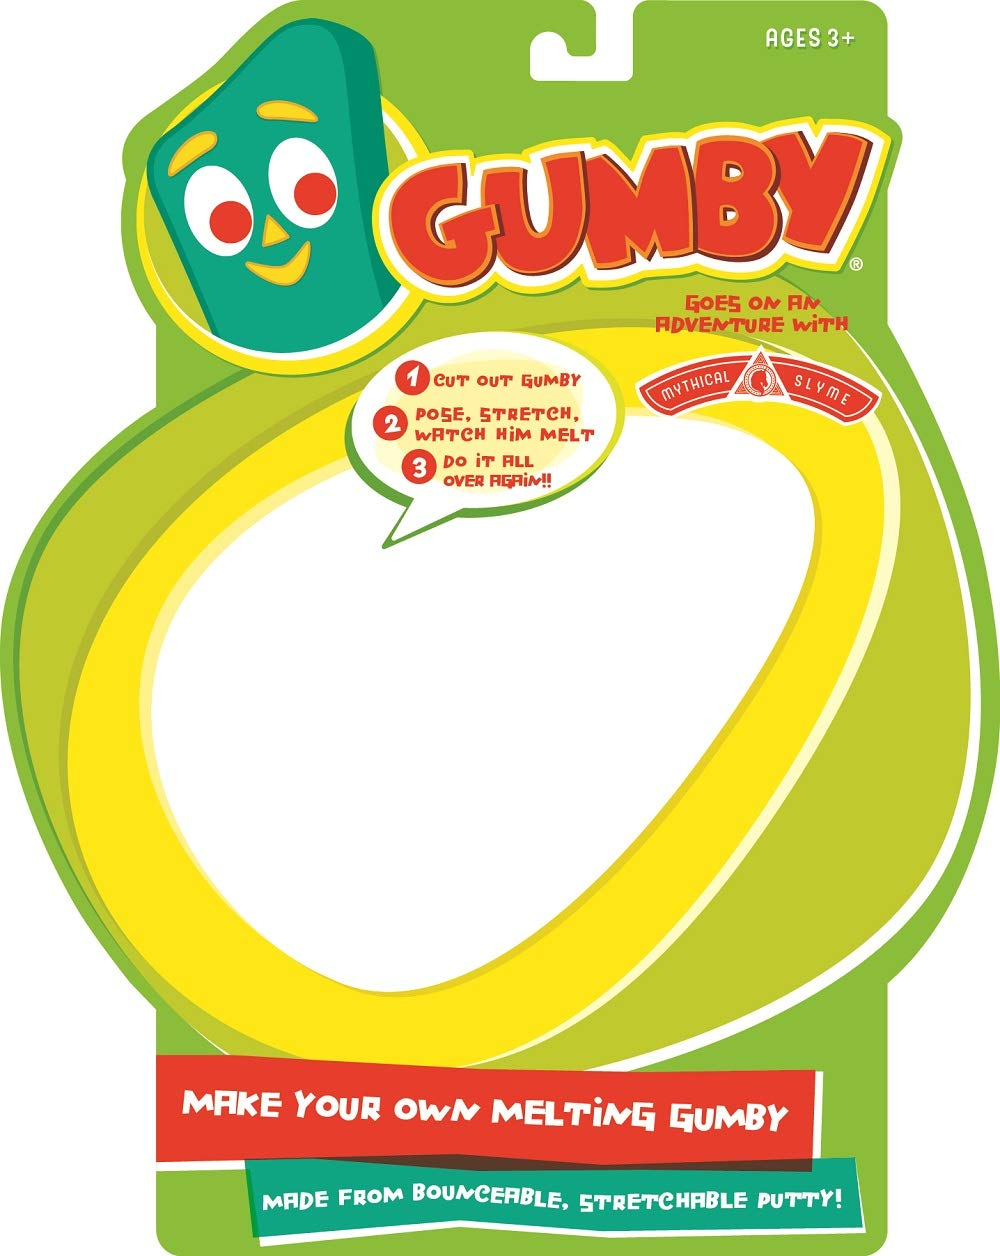 Make Your Own Melting Gumby